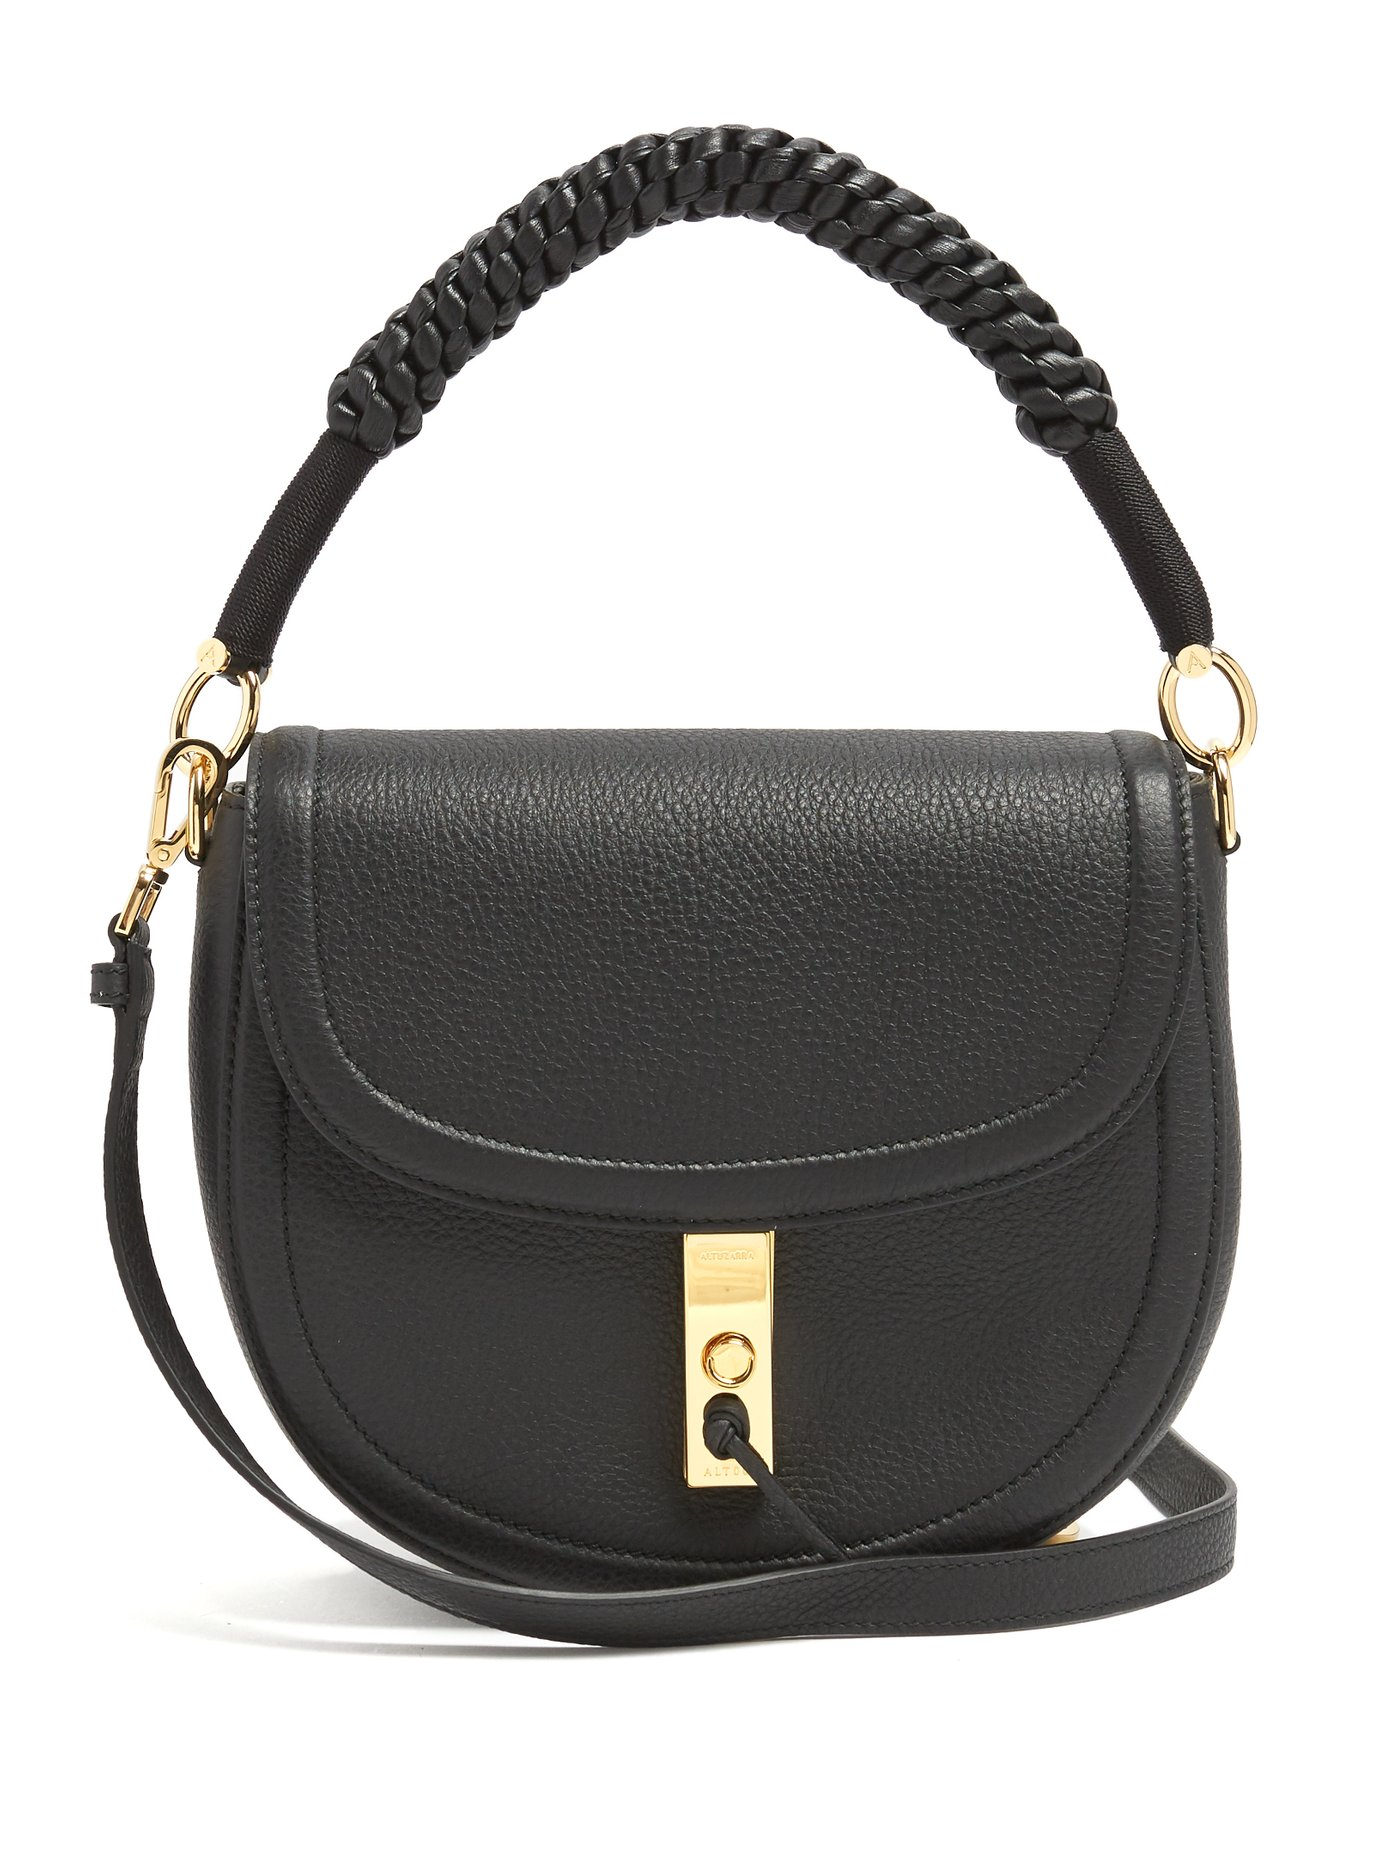 b1f151cb1 Braided-leather top handle, adjustable and detachable shoulder strap.  Gold-tone metal hardware and protective feet. Black lacquered edges. Back  slip pocket